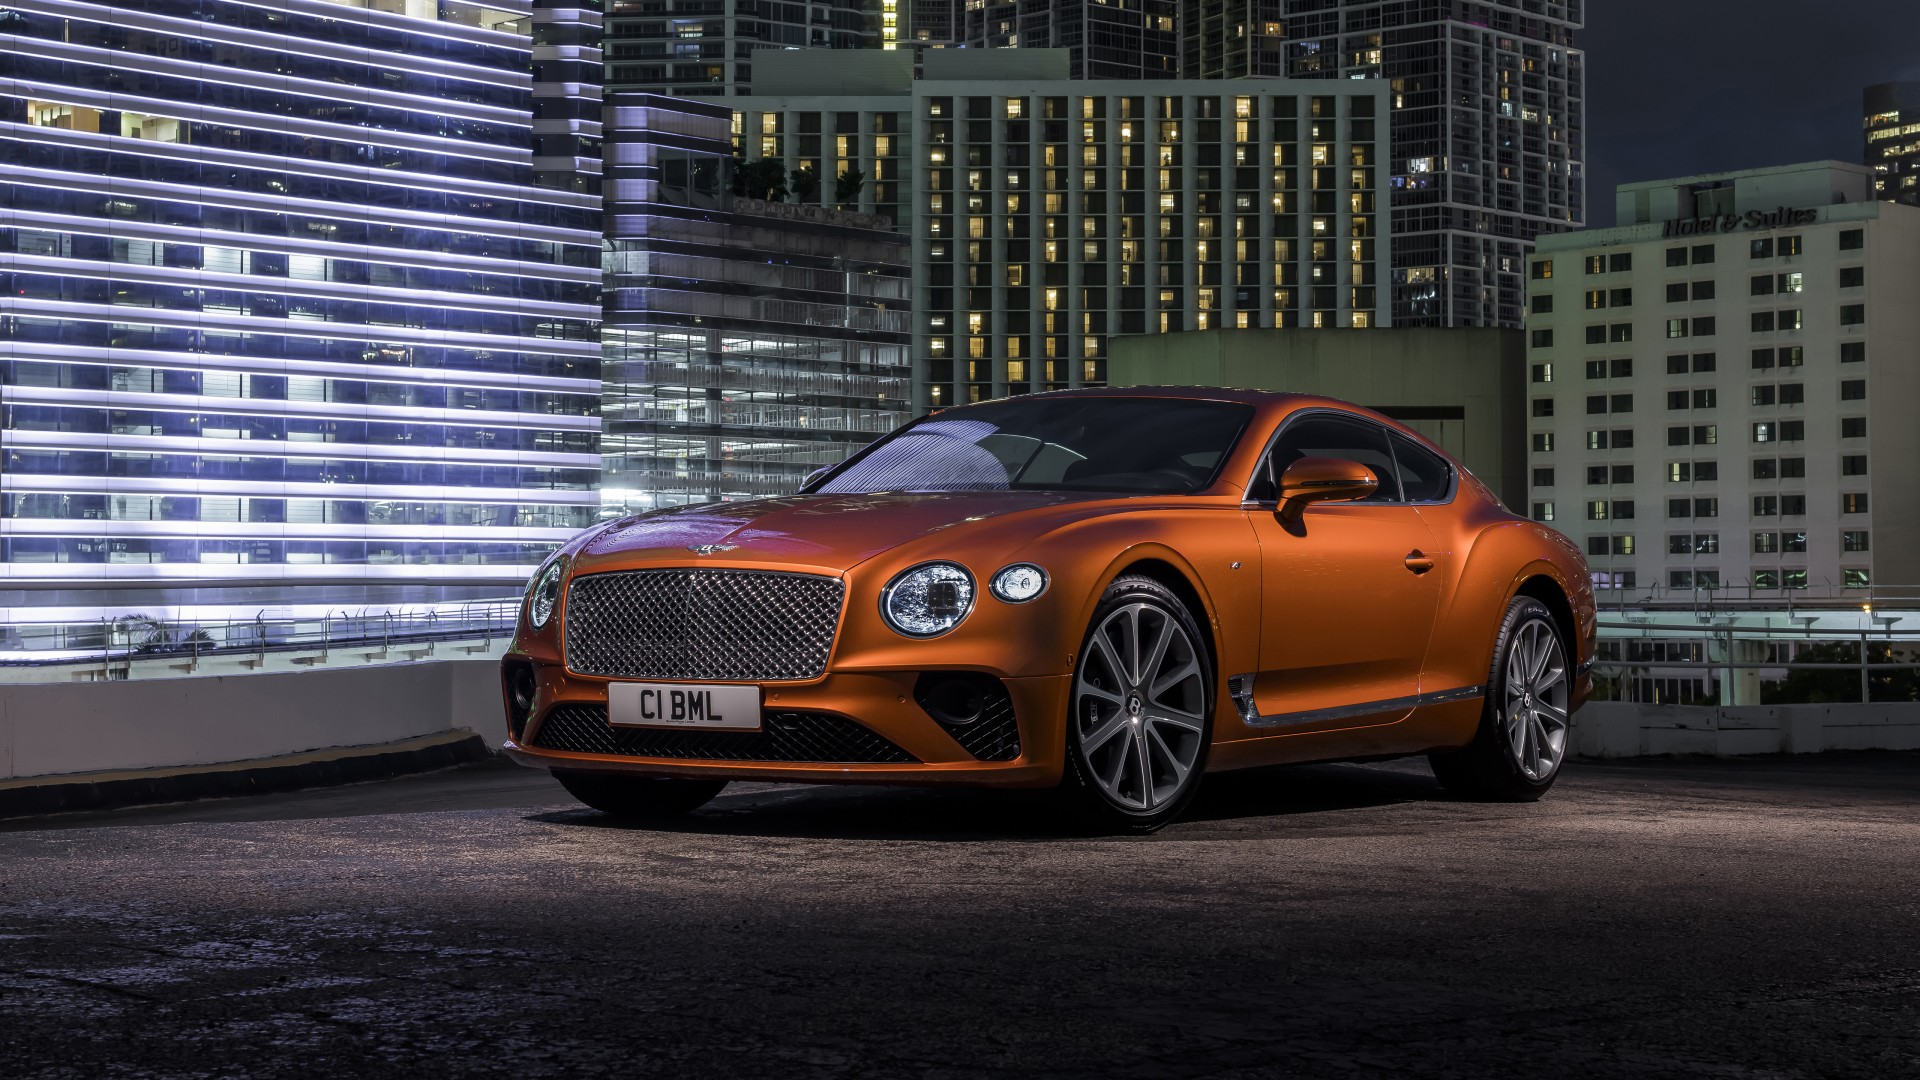 Bentley Continental GT V8 2019 4K Wallpaper | HD Car ...